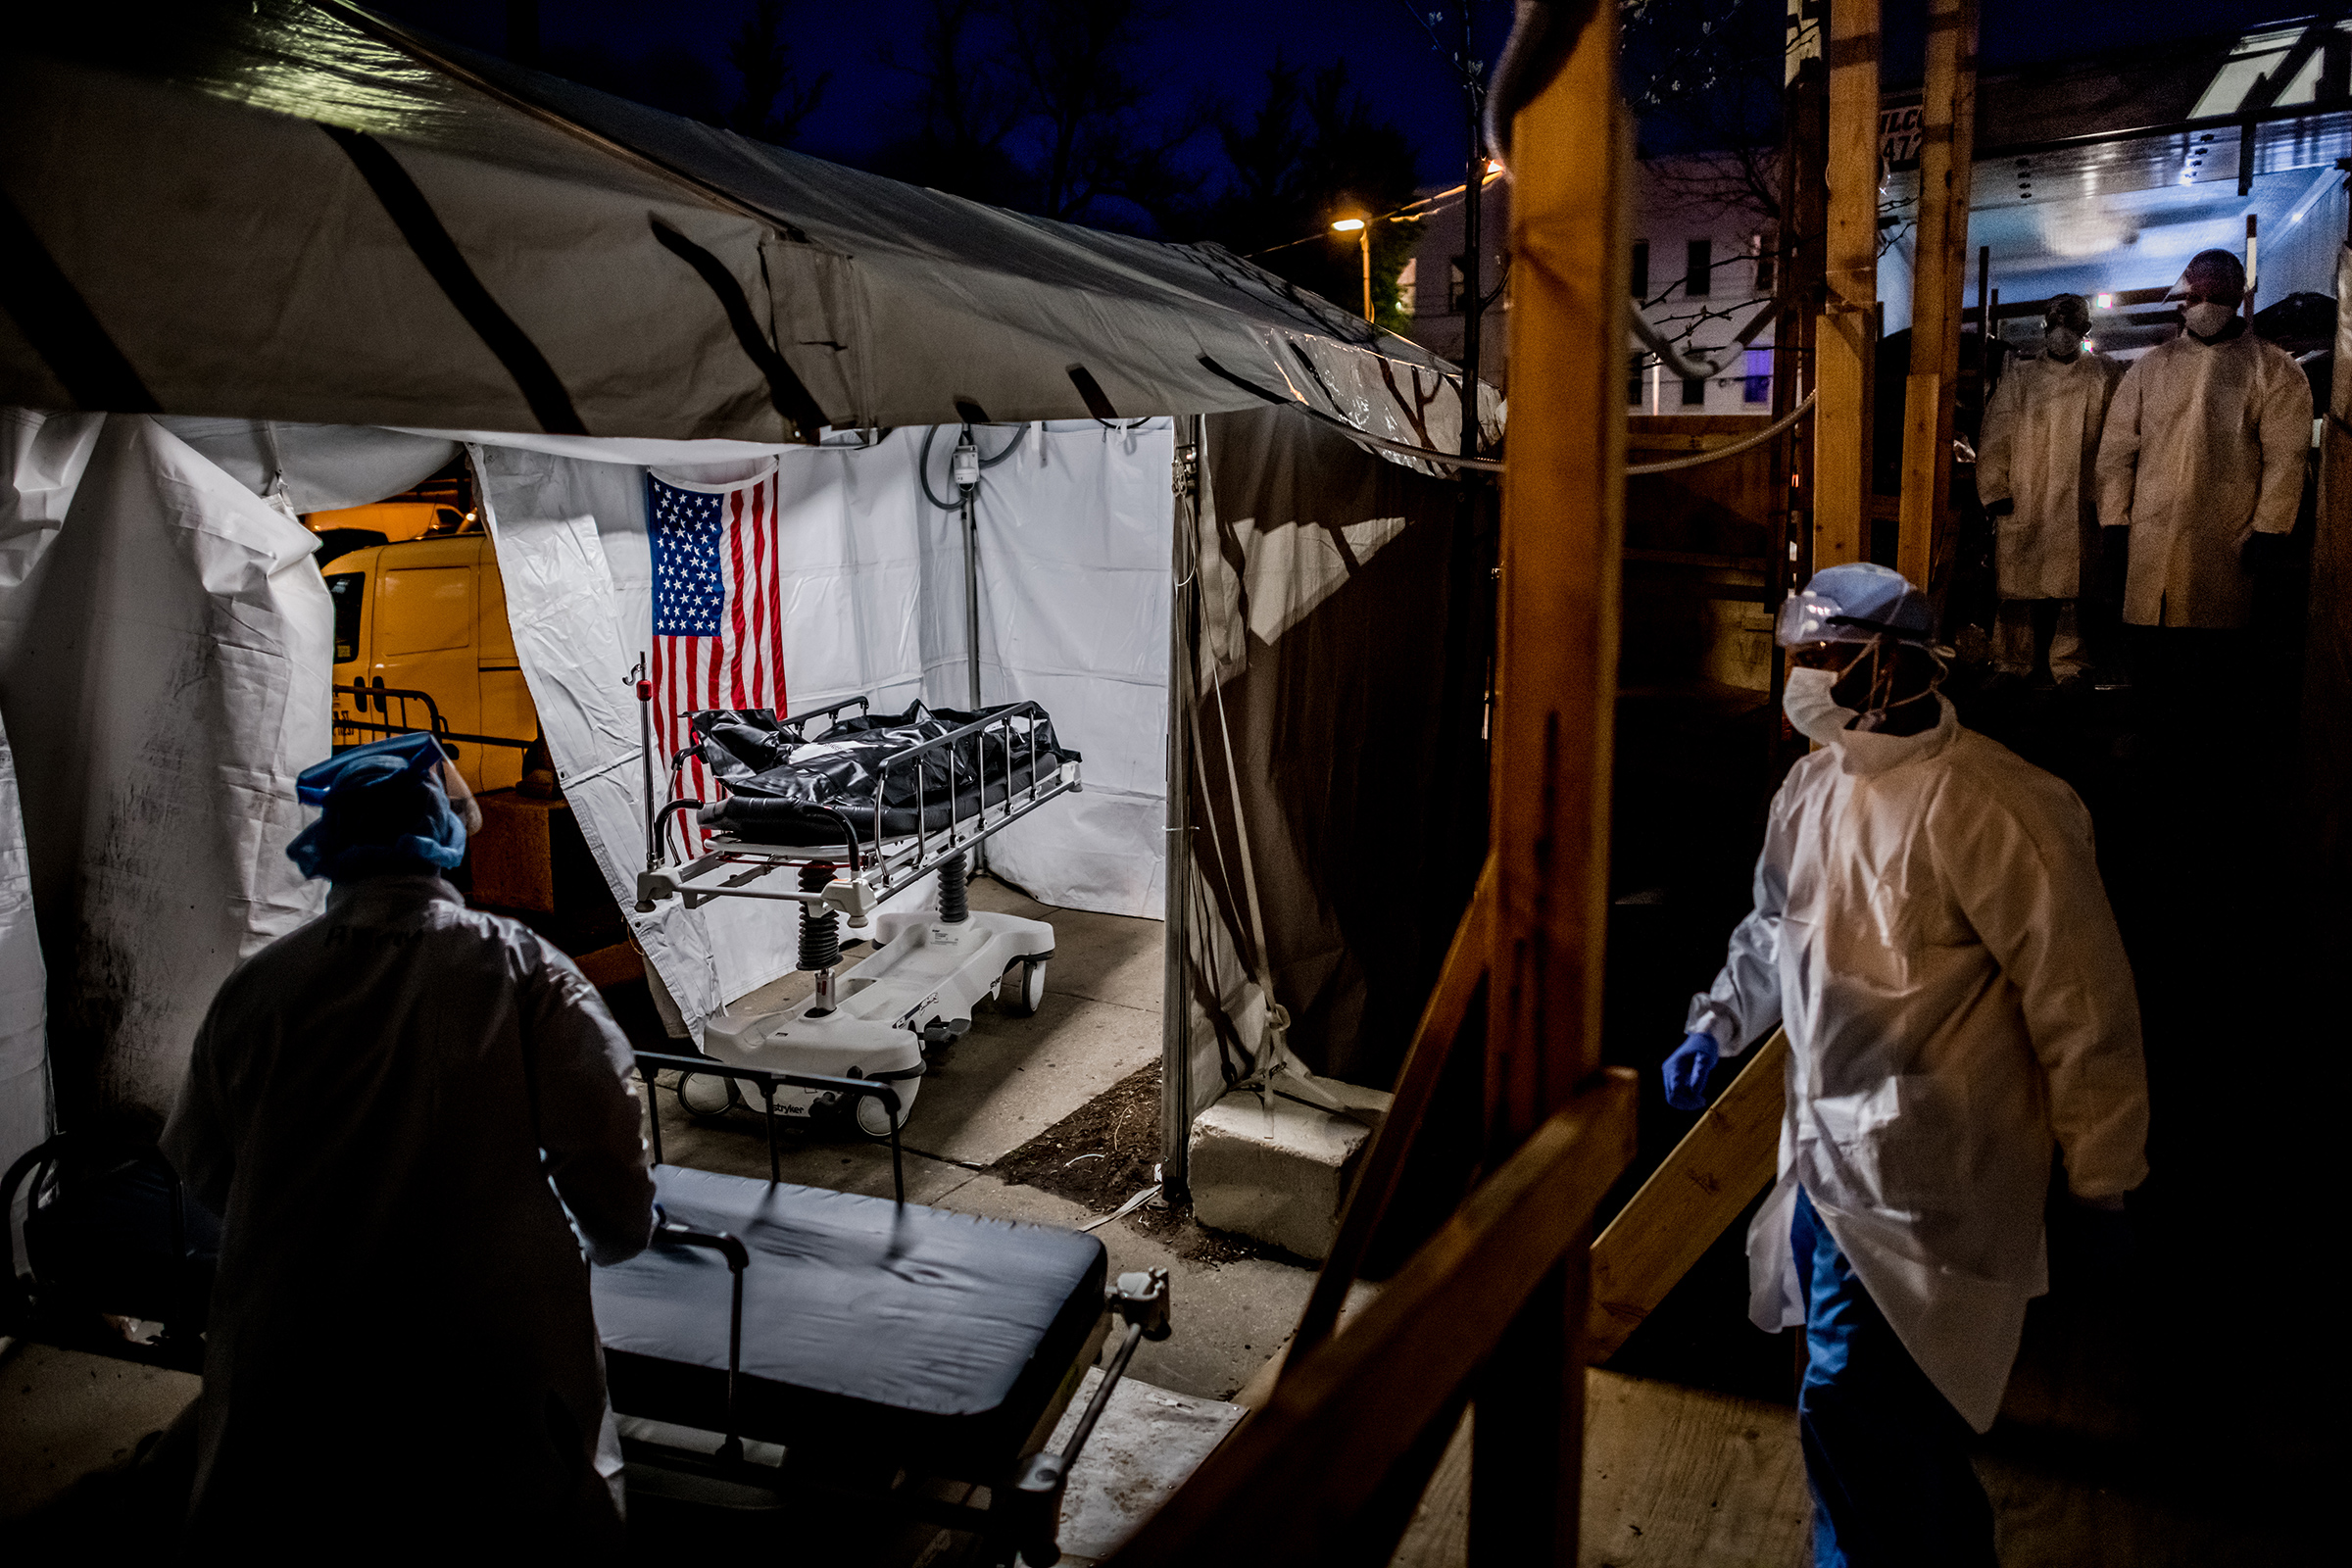 The transport team moves the body bags of deceased COVID-19 patients from the overflowing morgue of Brooklyn's Wyckoff Heights Medical Center into the improvised morgue set up outside on April 27. Three refrigerated semitrailers, capable of holding more than 150 bodies between them, were brought in as an emergency solution during the height of the pandemic. The transports often occurred at night to avoid upsetting neighbors of the hospital.